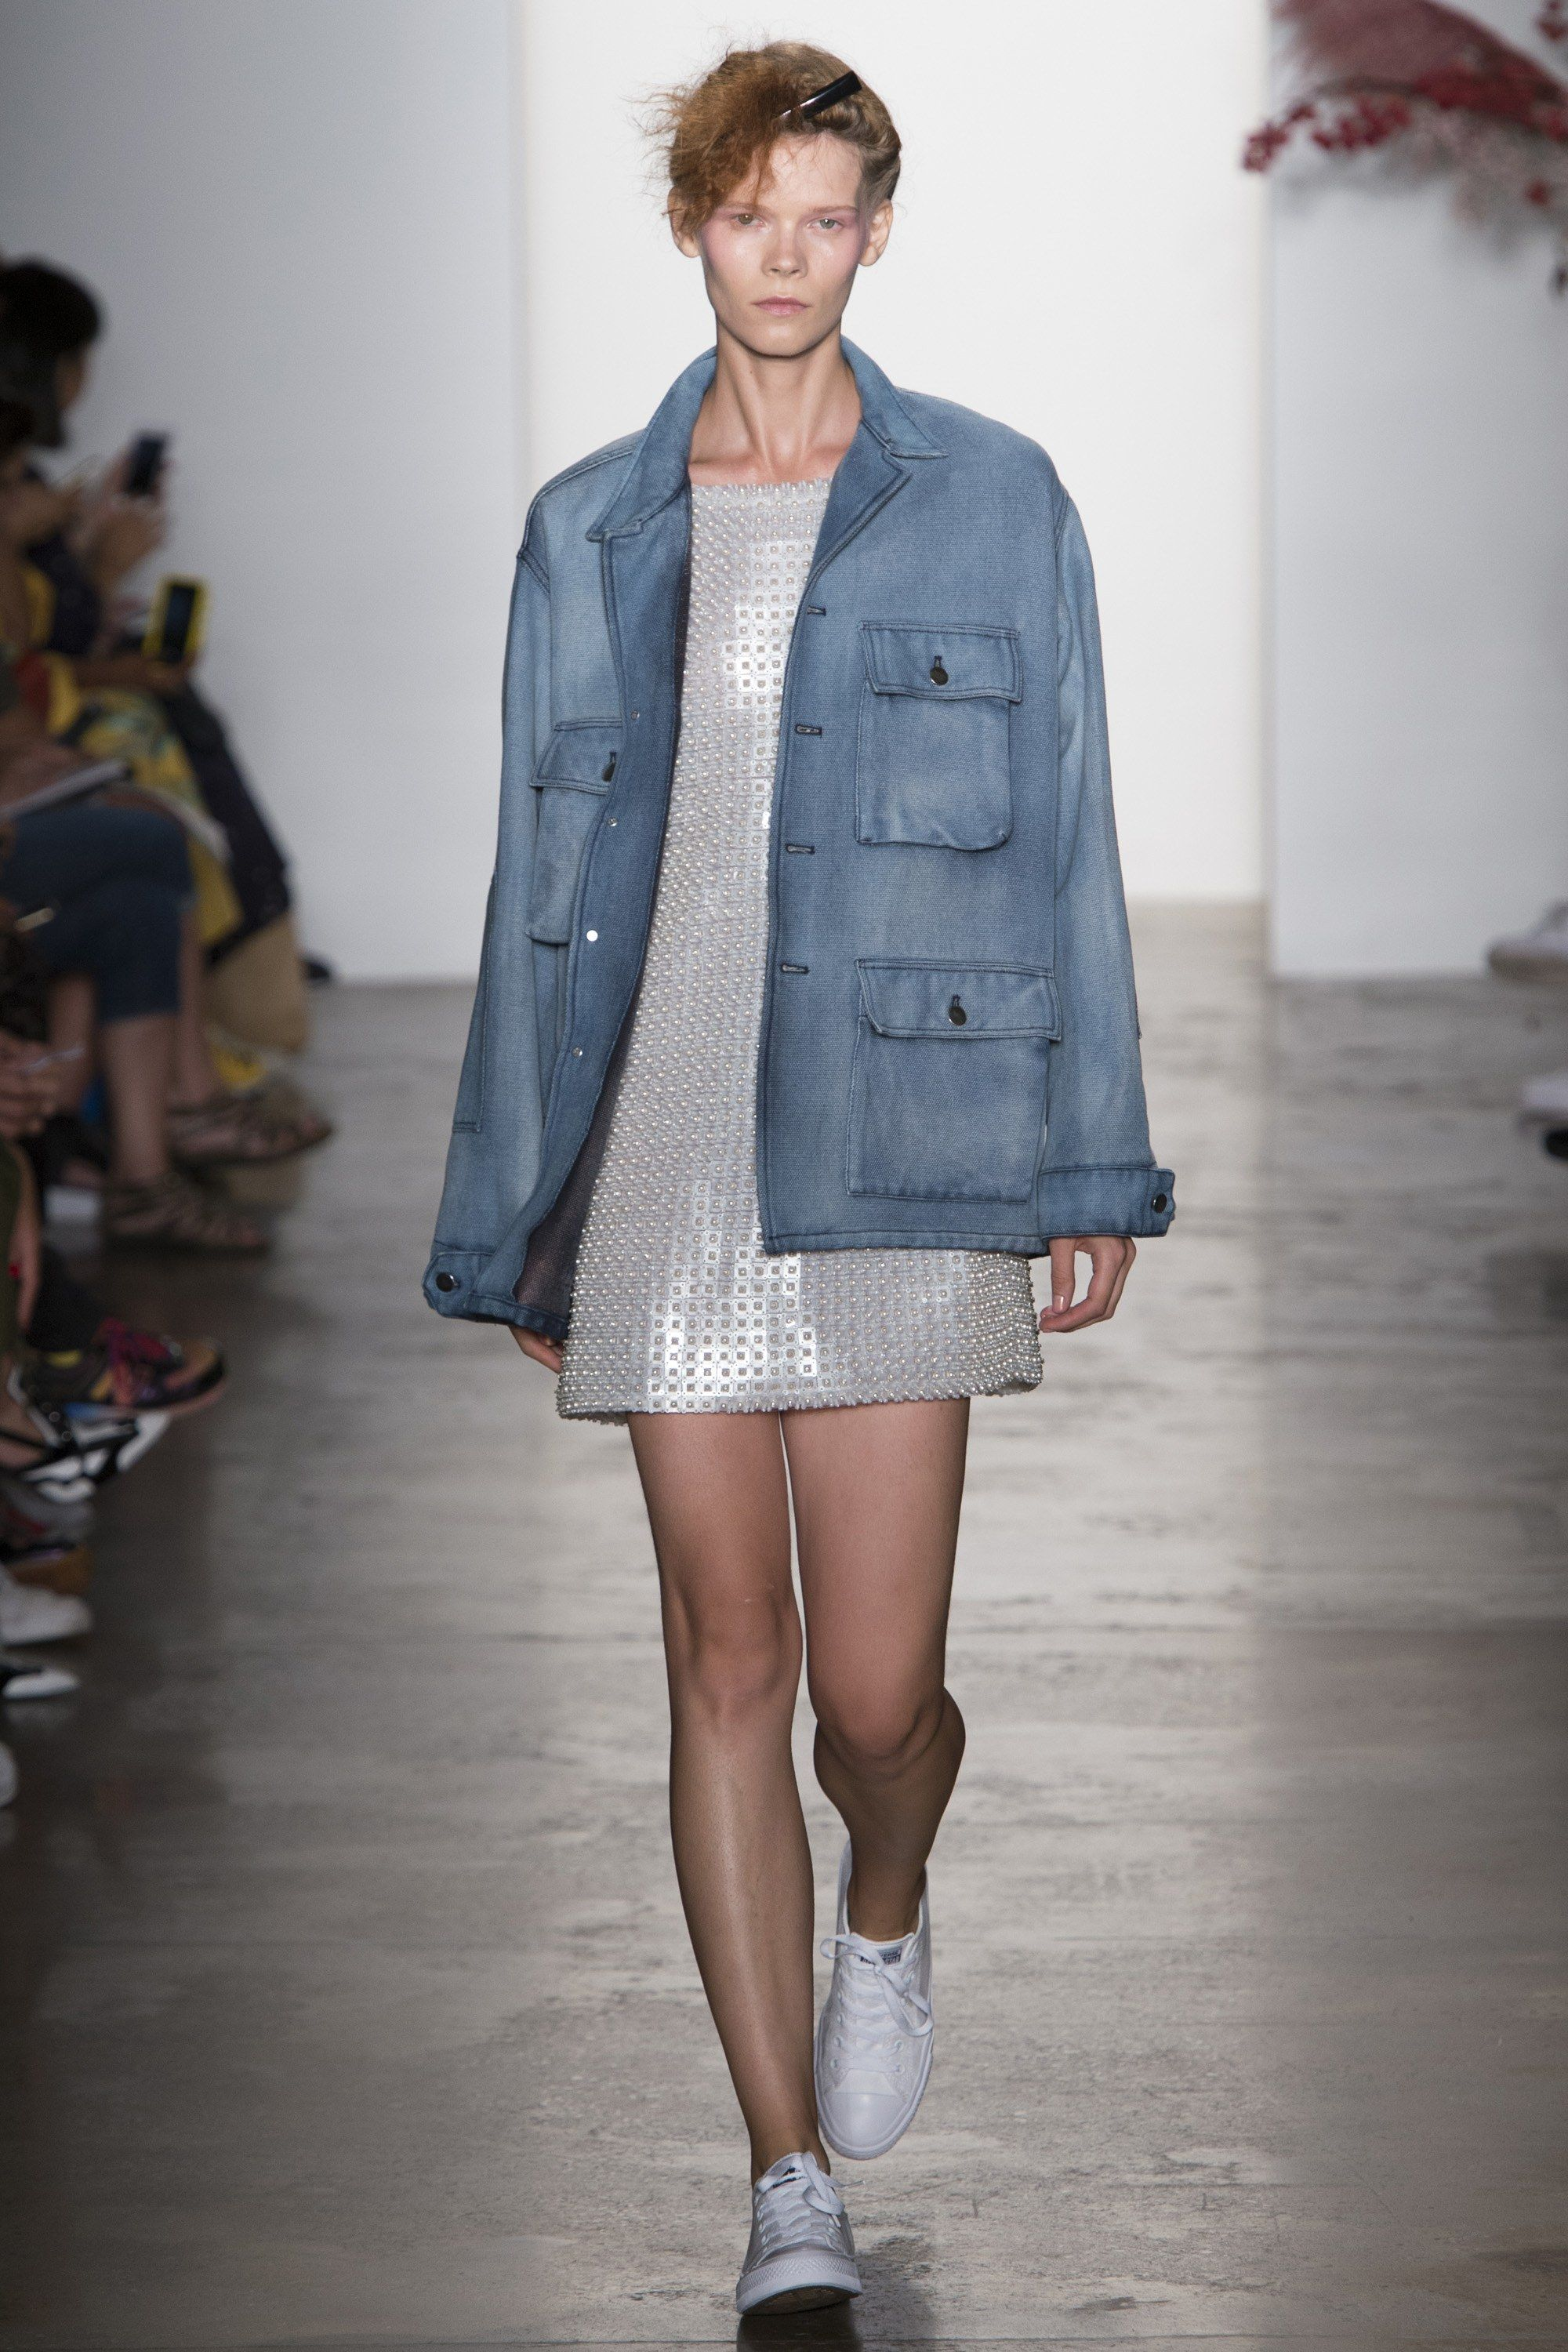 To acquire Selman adam spring runway picture trends